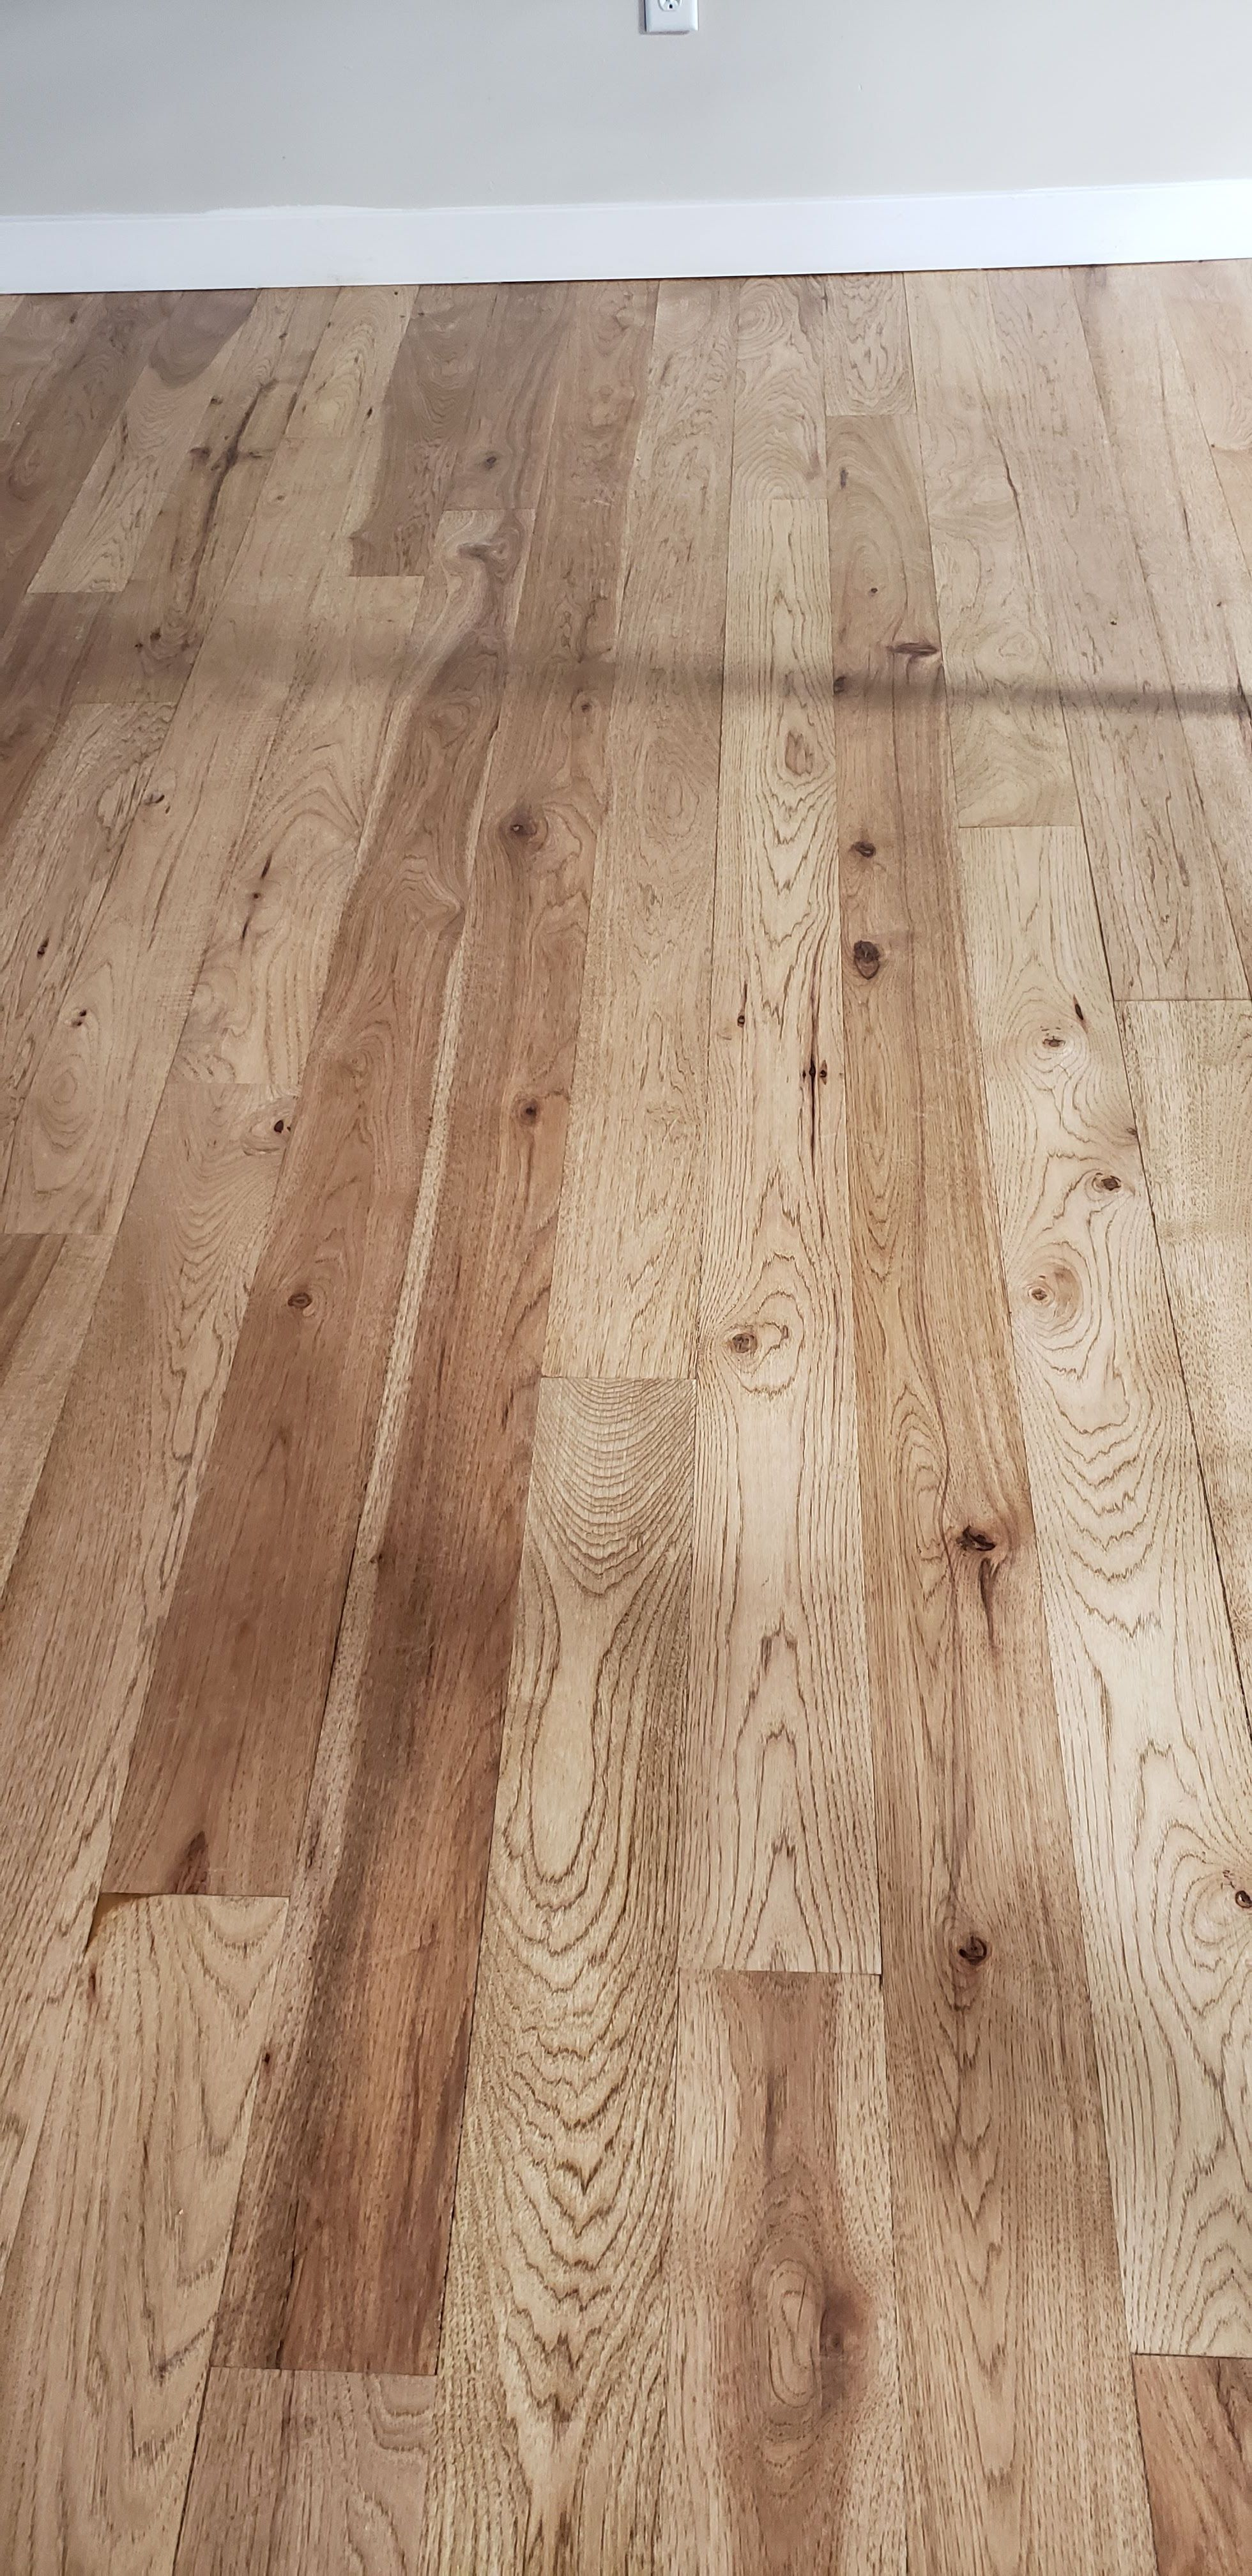 Stained Hickory Floors In 2020 Hickory Flooring Hickory Hardwood Floors Hardwood Floors